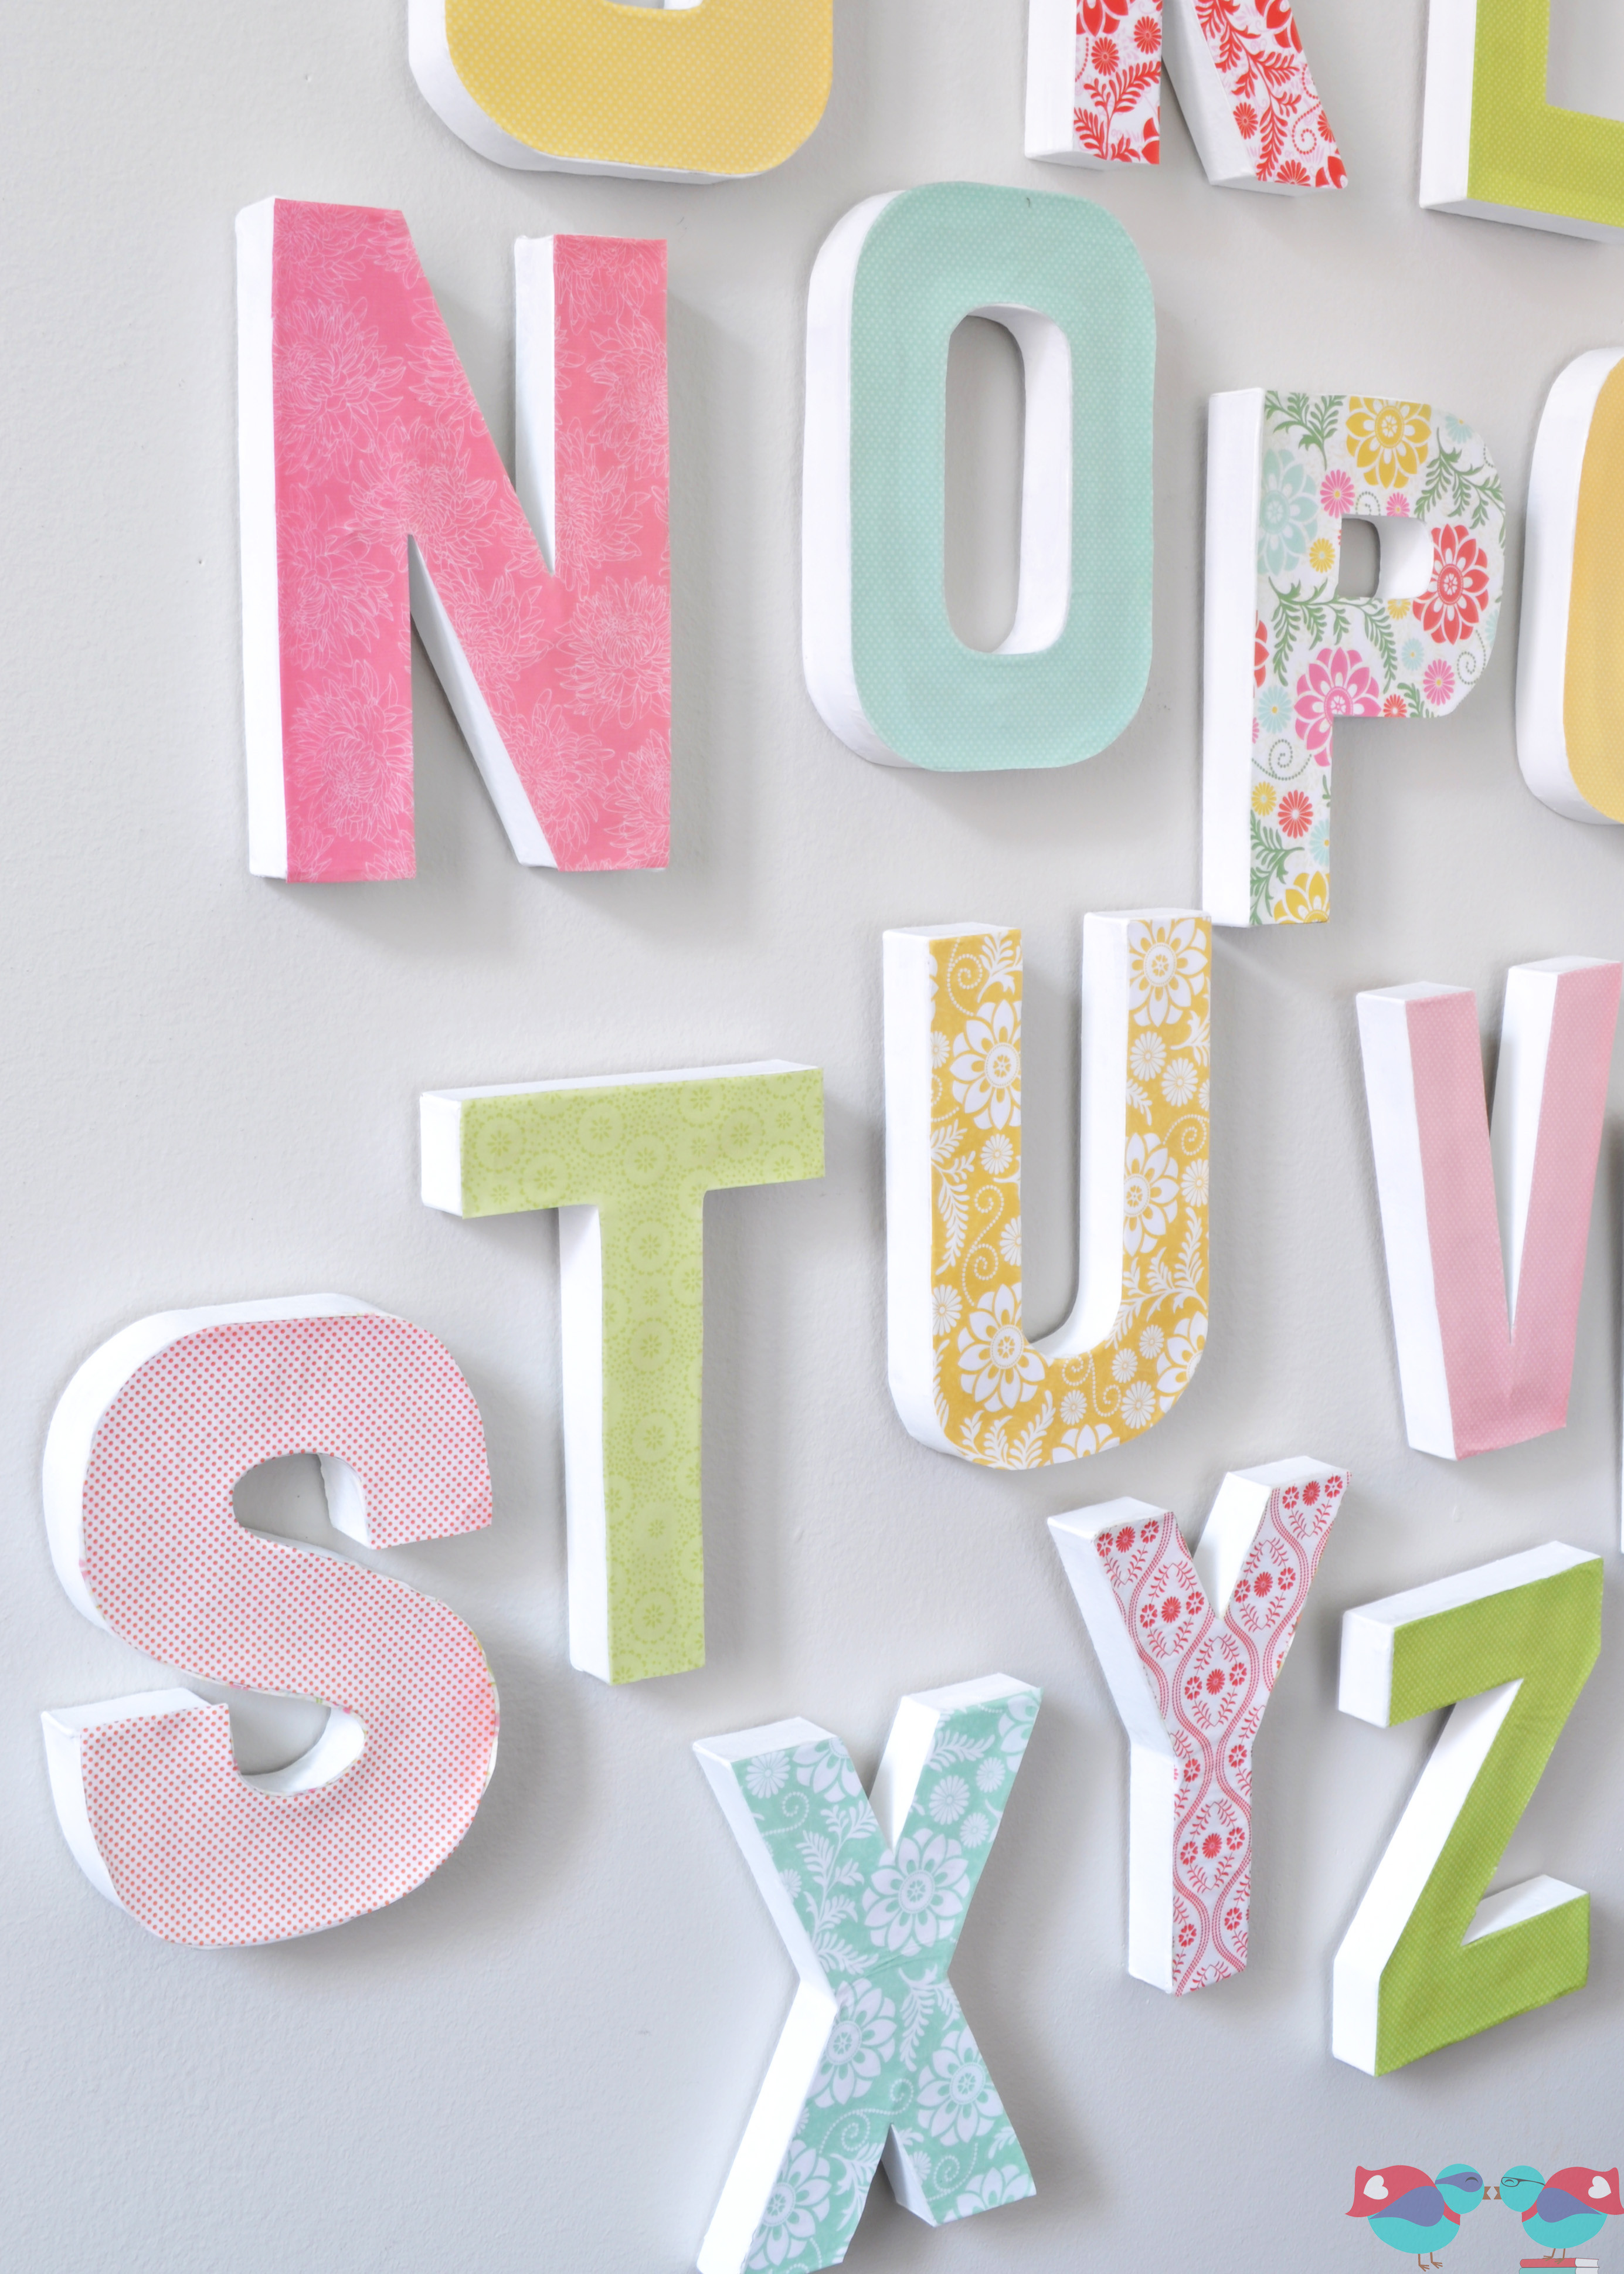 Best ideas about DIY Wall Letters . Save or Pin How to Make your own Letter Wall The Love Nerds Now.